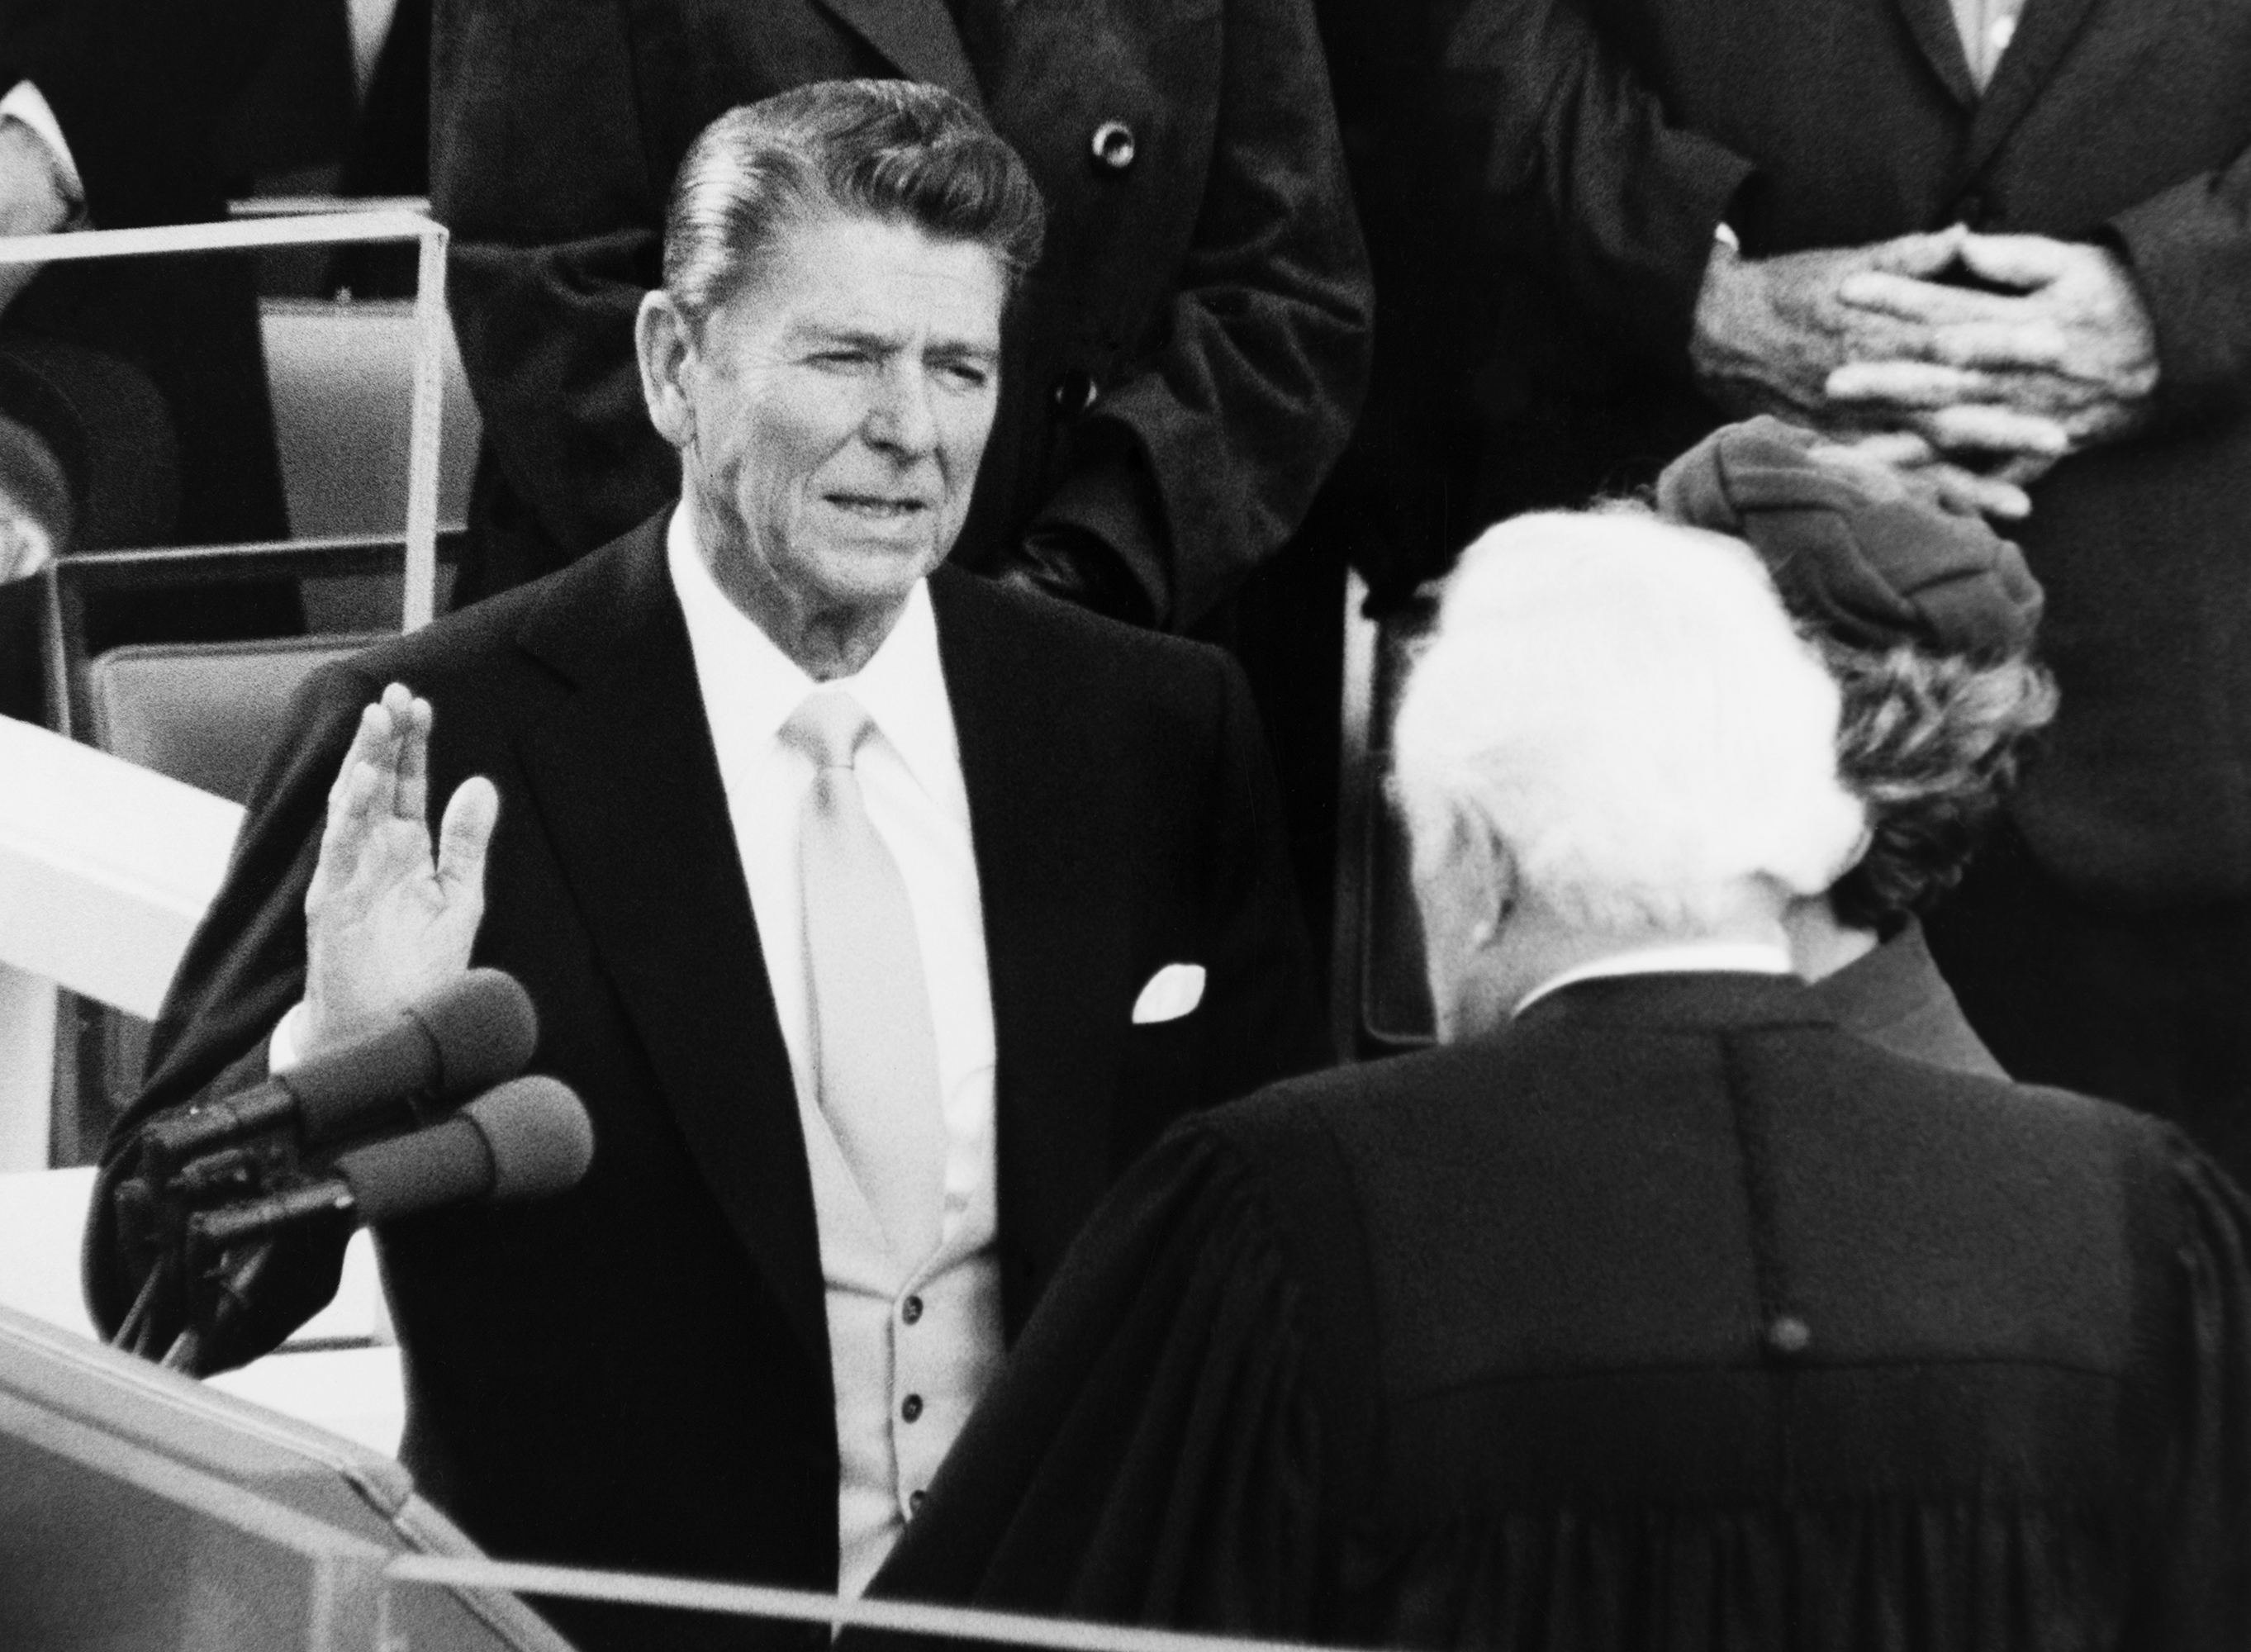 President Ronald Reagan takes the oath of office in 1981. (CQ Roll Call file photo)